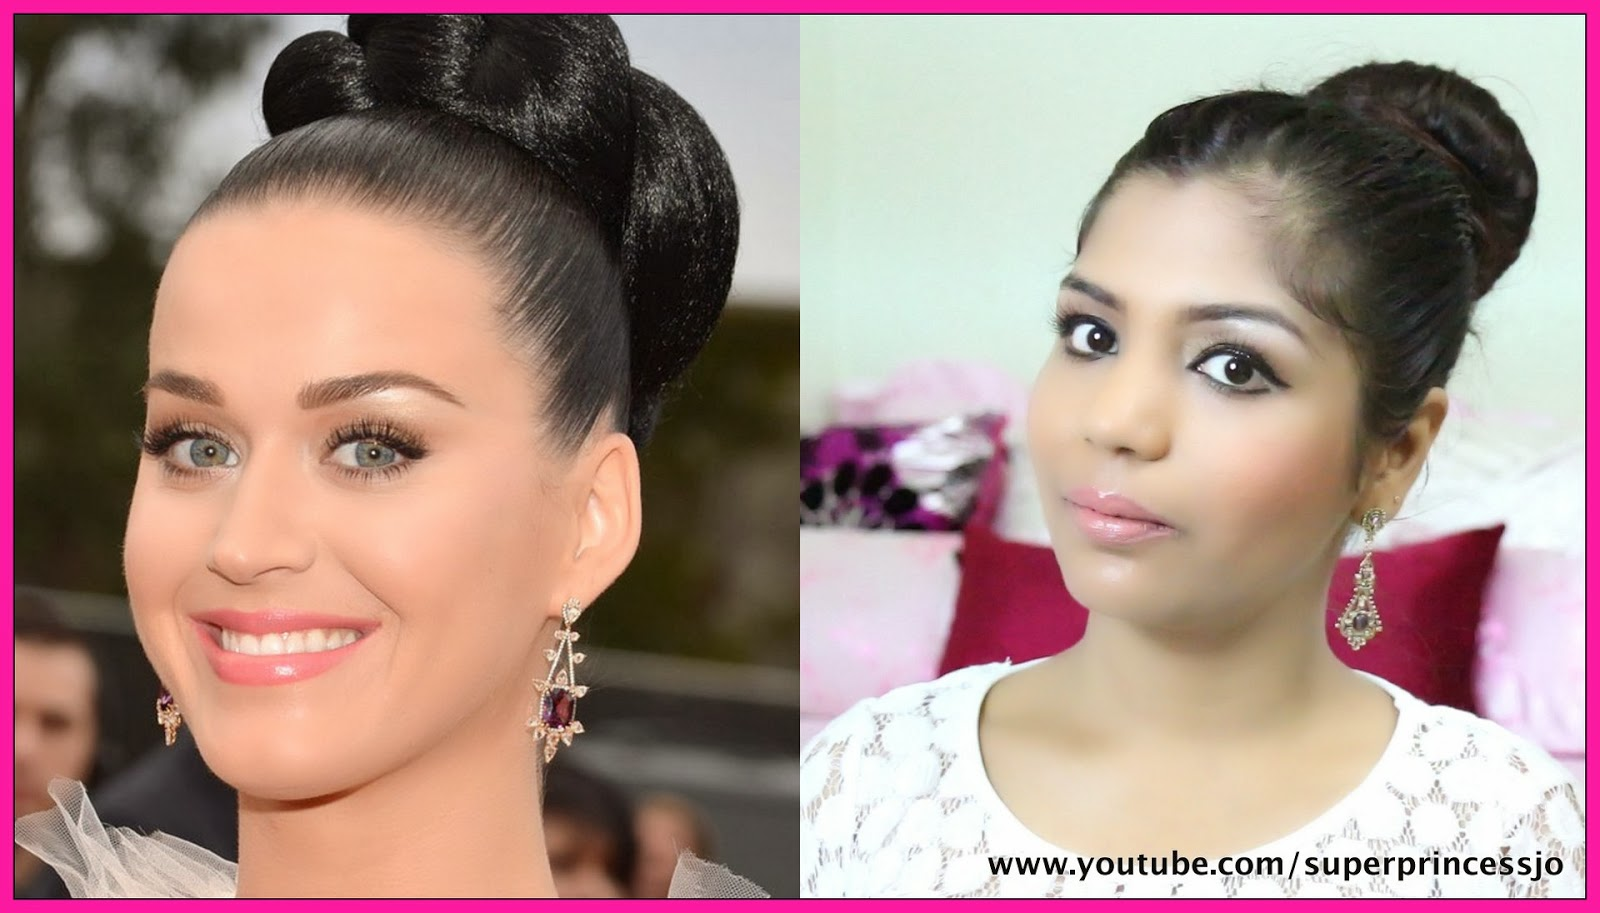 Superprincessjo Best Dressed Celebrity Grammys 2014 Katy Perry Makeup How To Do Katy Perry Grammys Makeup Look